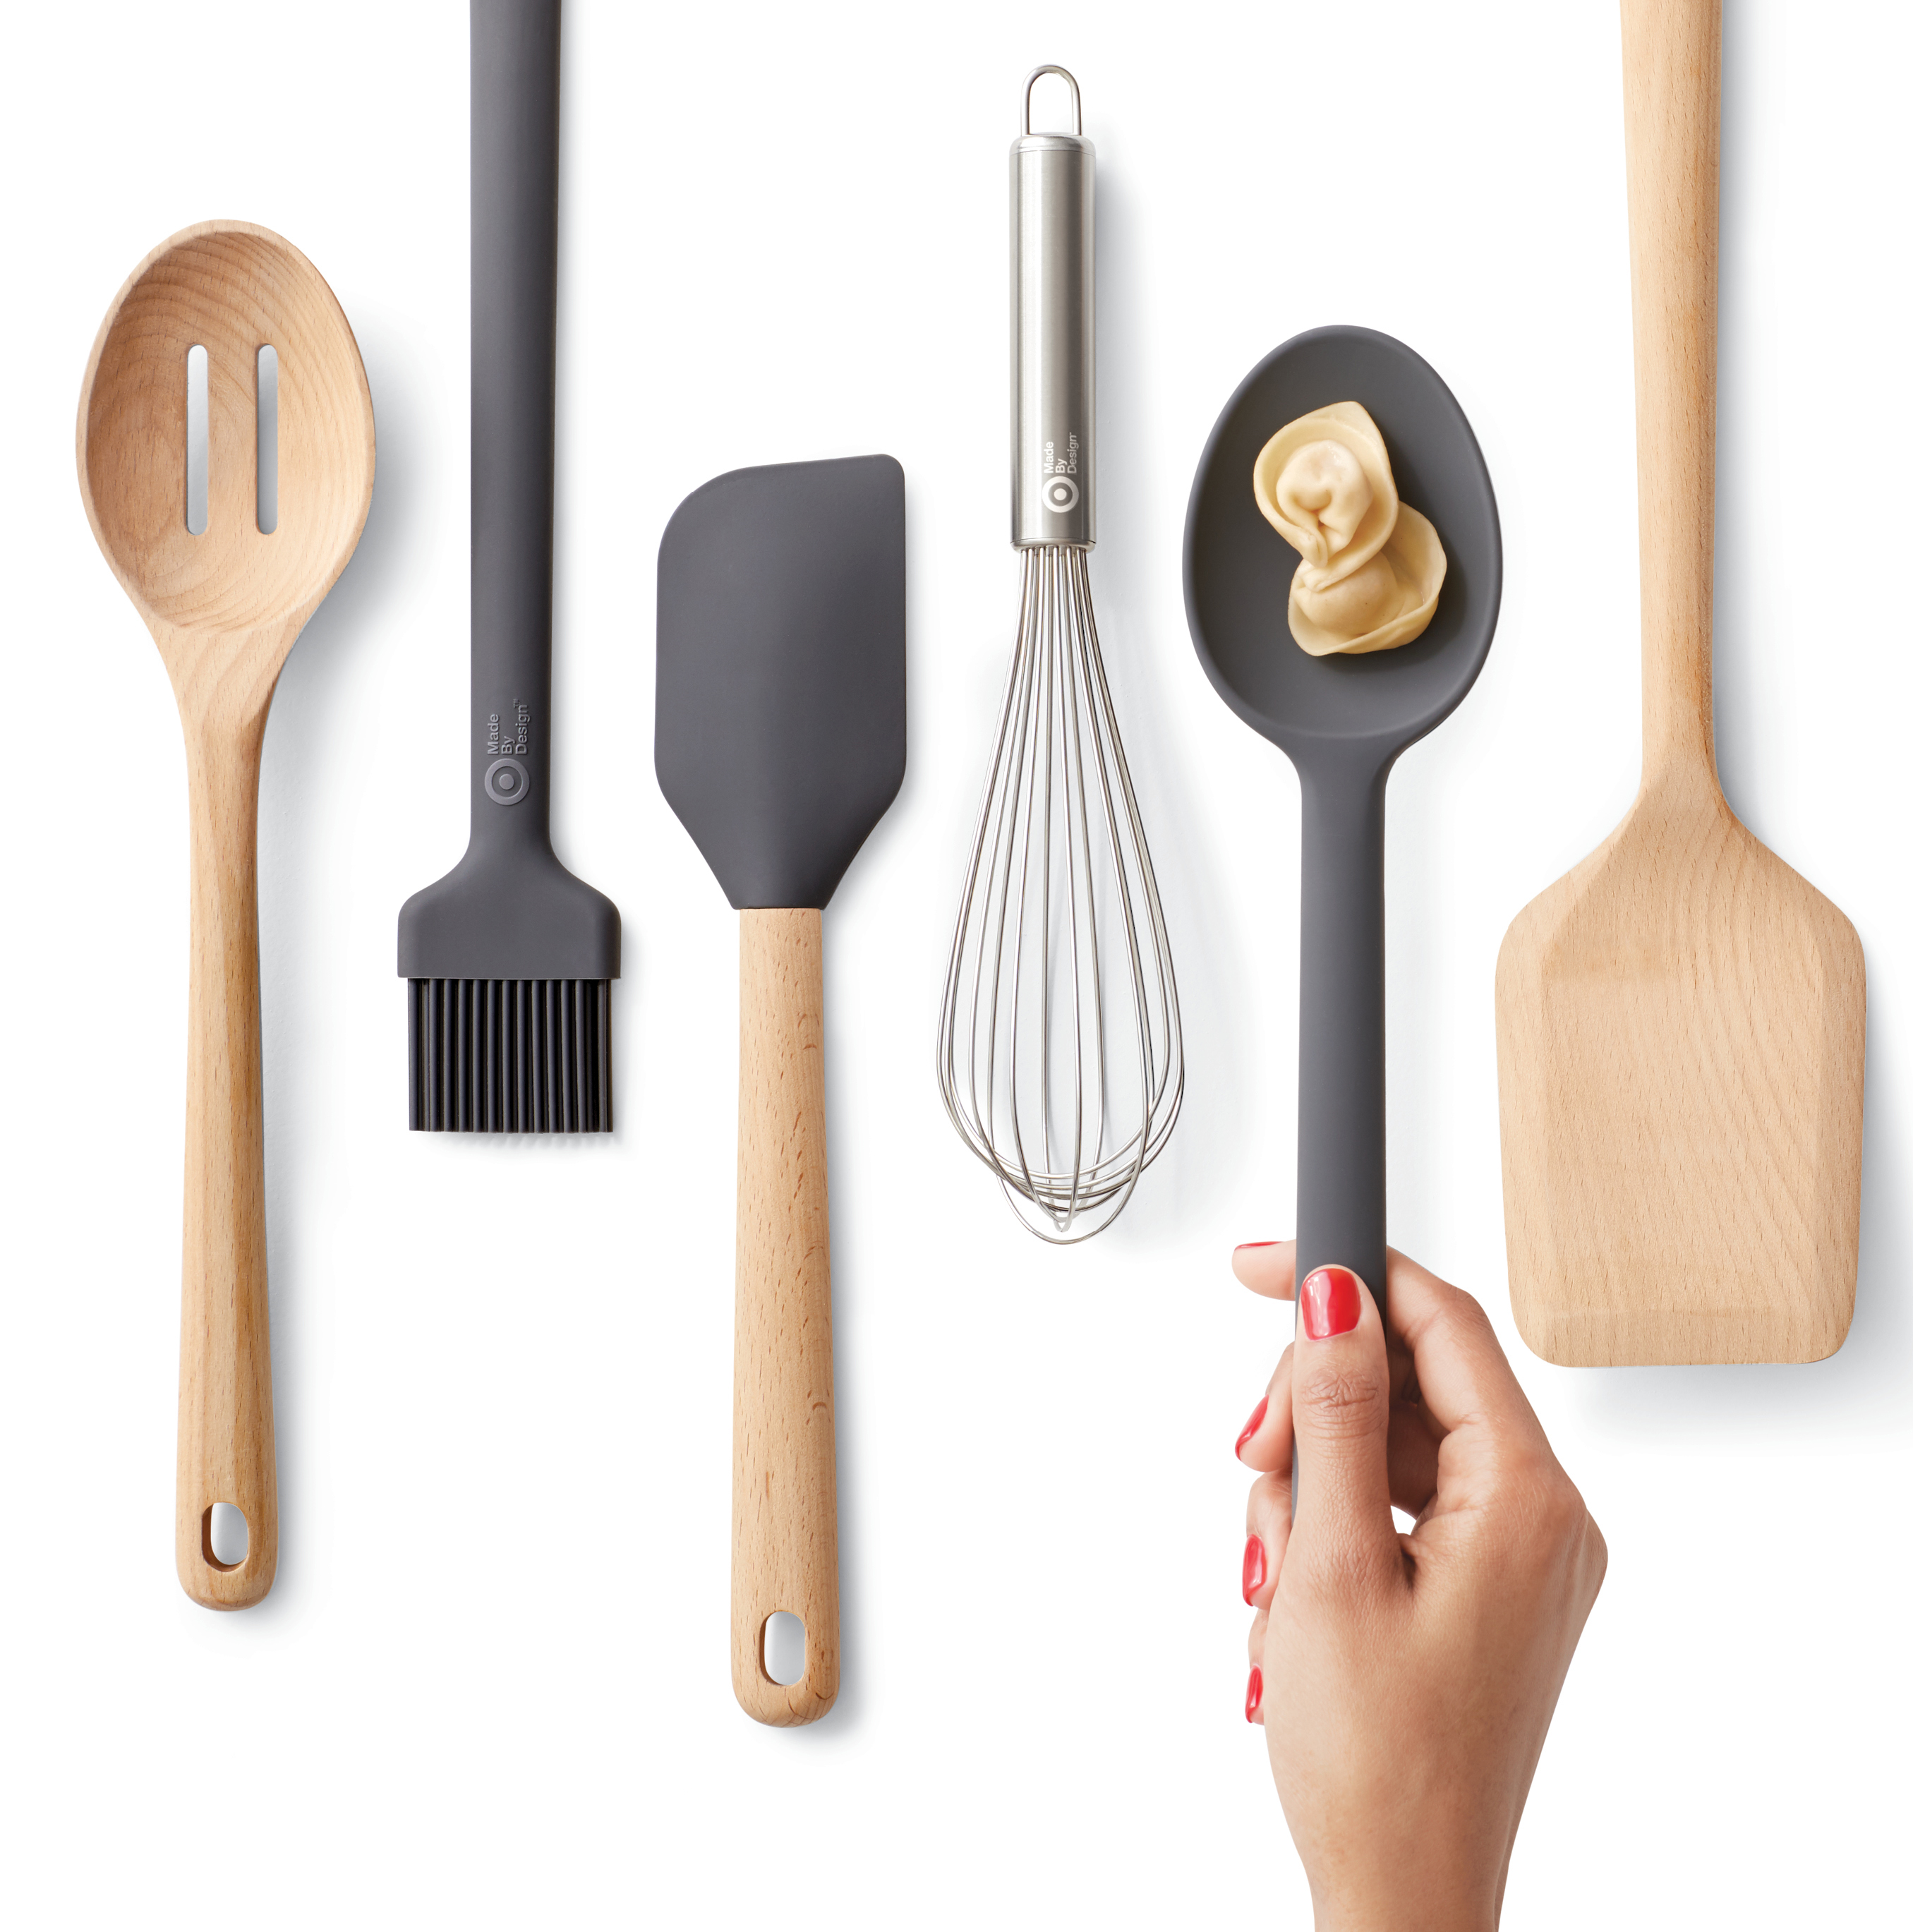 A mix of plastic and wooden kitchen utensils, including slotted and regular spoons, basting brush, spatula and whisk